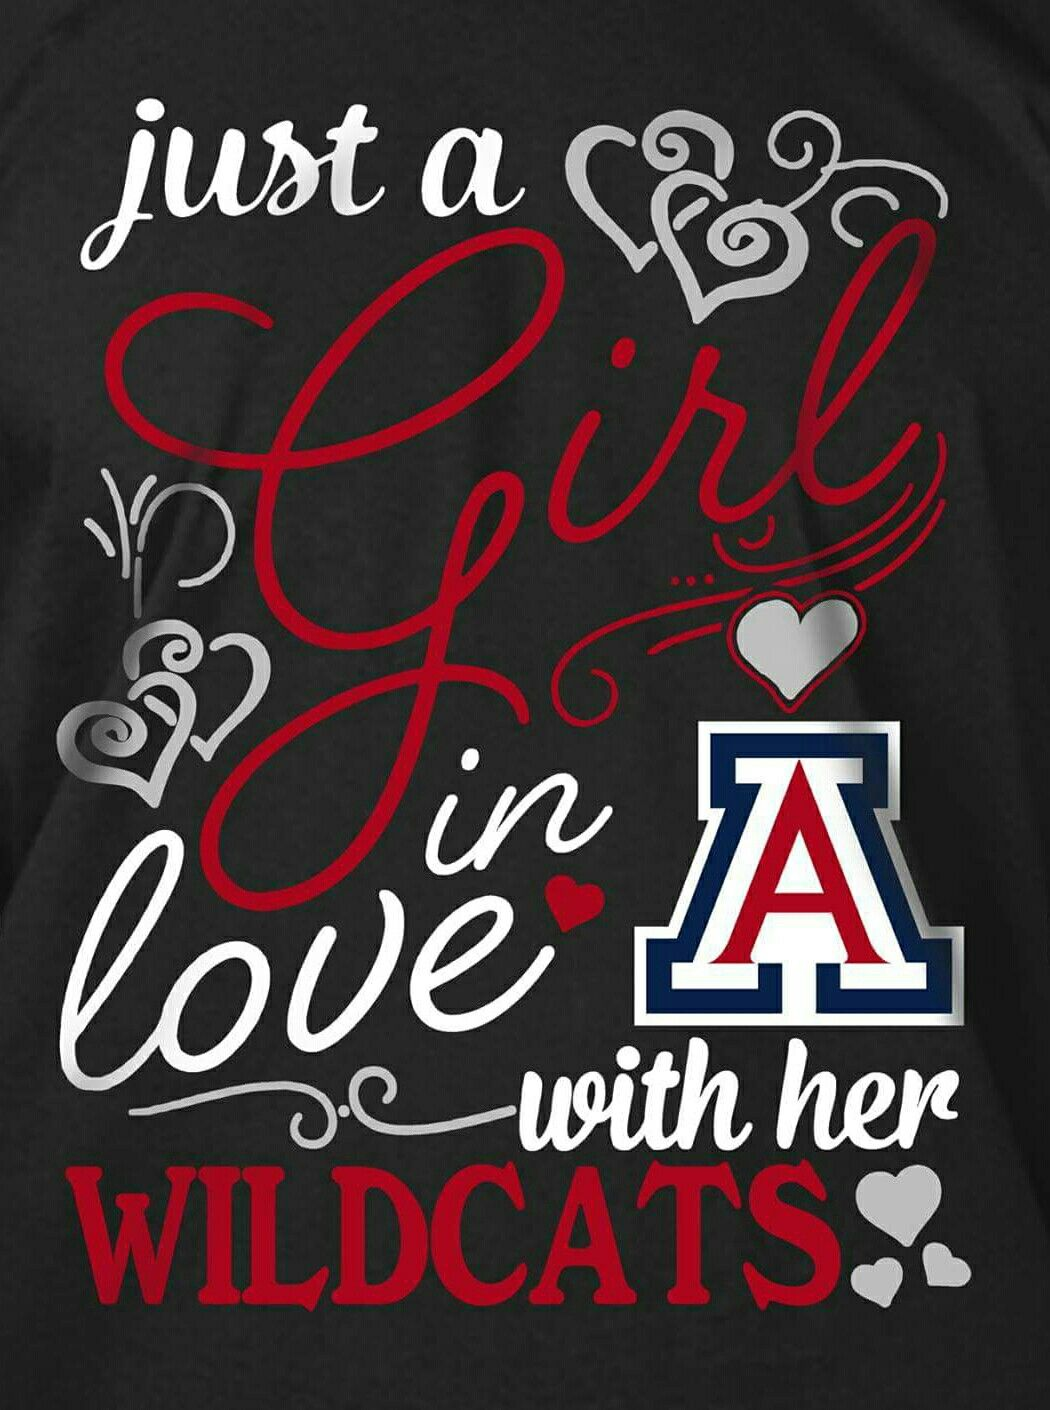 Pin By Pc Bubbles On U Of A All Day University Of Arizona Arizona Quotes Funny Quotes